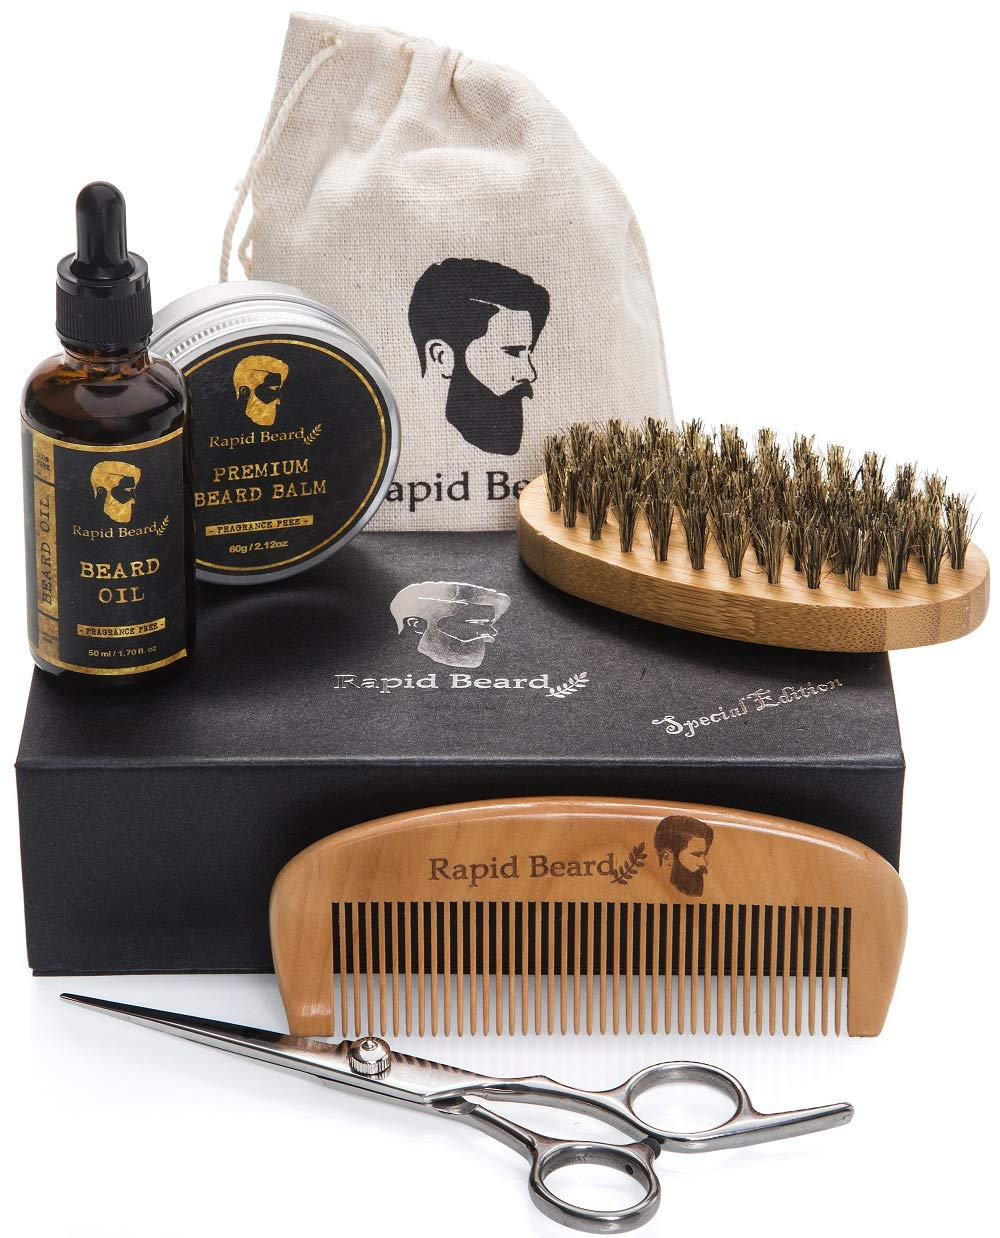 21st-birthday-gift-ideas-beard set